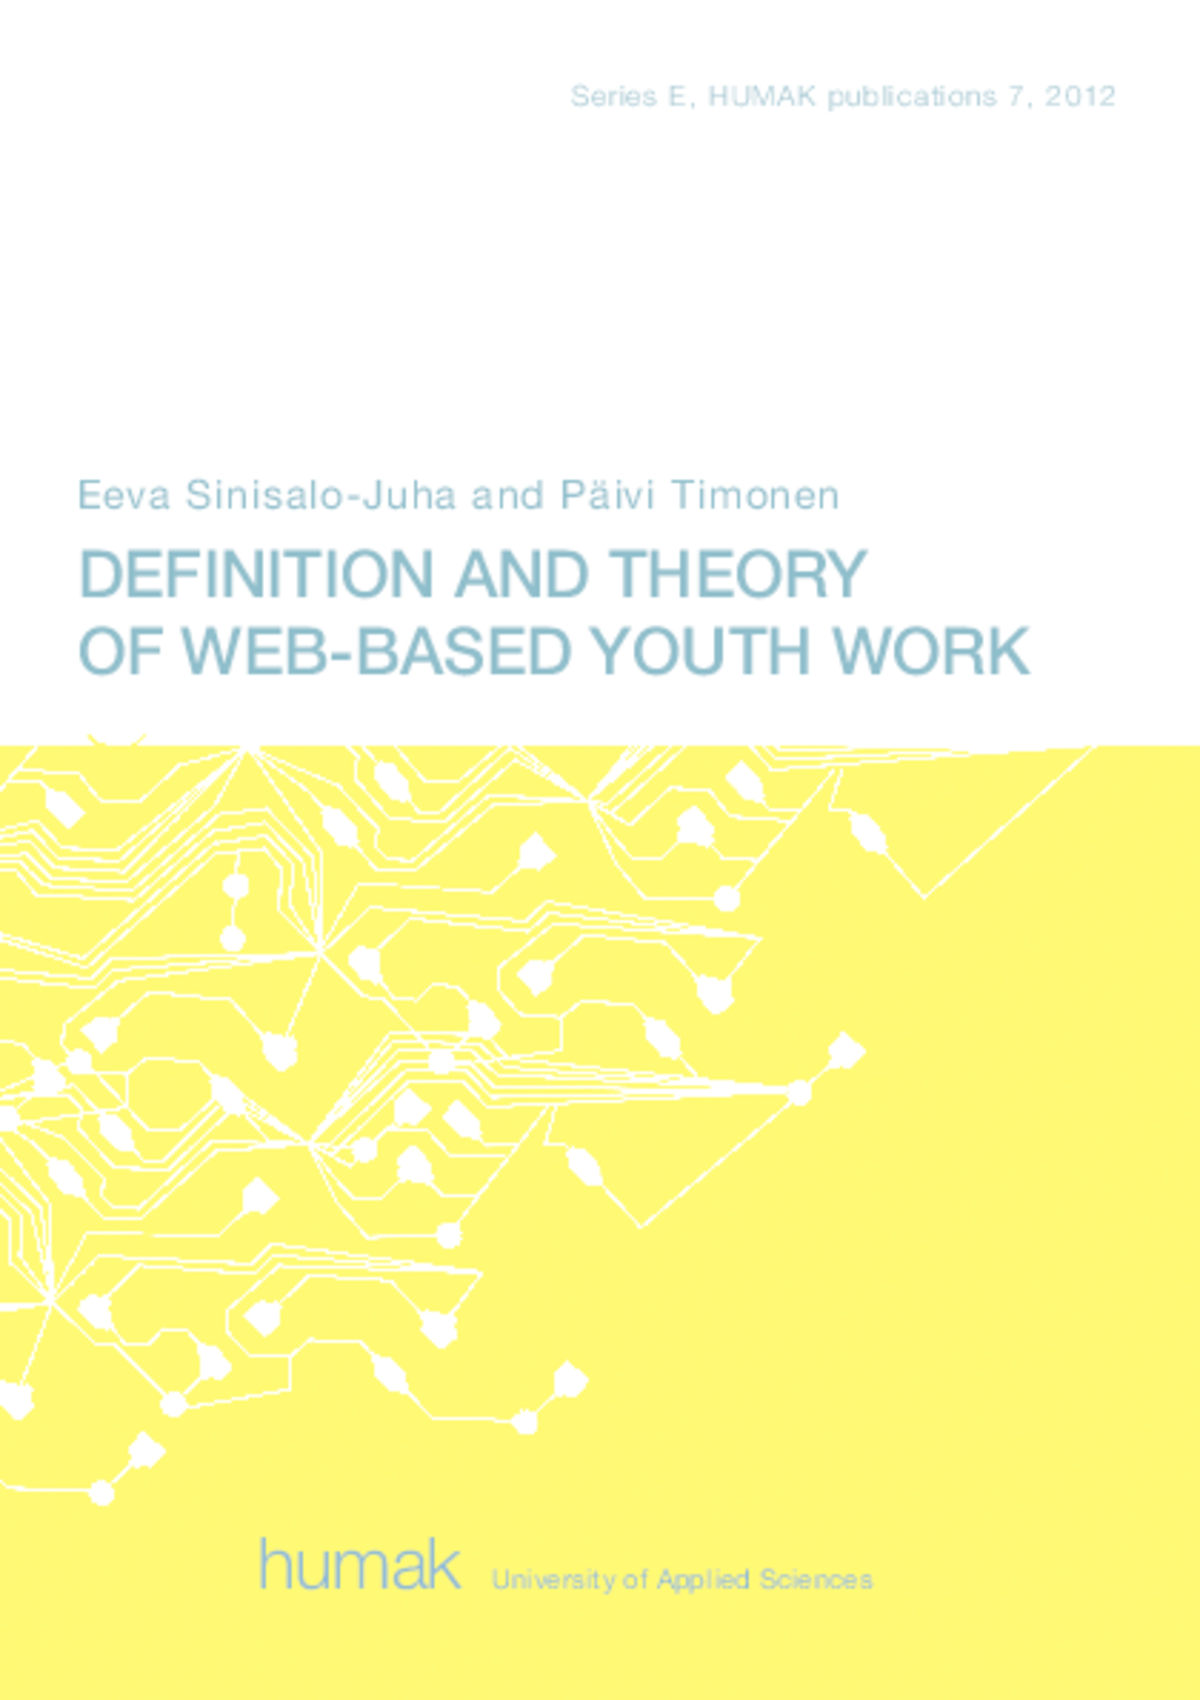 Web-based Youth Work